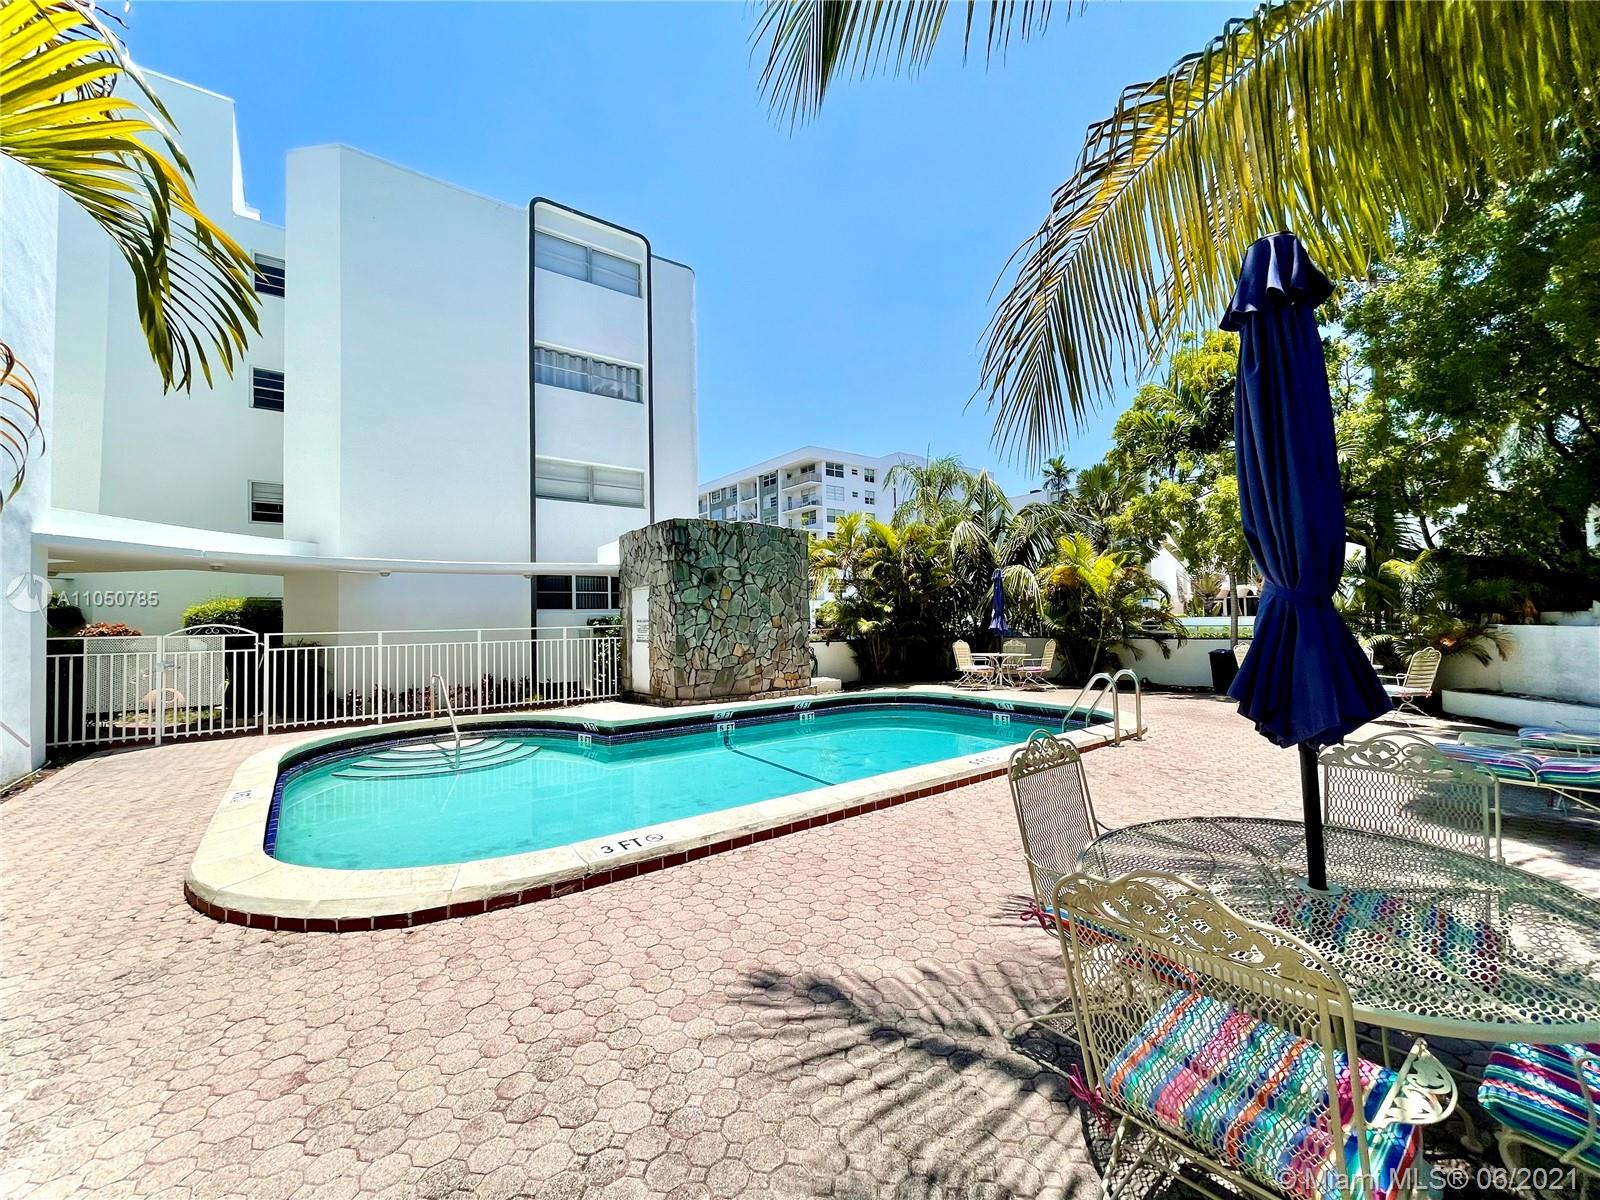 Amazing opportunity for investors in Bay Harbor Islands. This beautiful unit is located on the first floor and offers 1 Bedroom 1.5 Bath plu Den, high impact windows, ample kitchen, bright living and dining room area, huge master bedroom and walk-in closet. Building offers, community pool and laundry. Great location 1 block away from School, walking distance to Restaurants, Bal Harbour Shops, Banks and Beautiful Beaches. Great Location!!